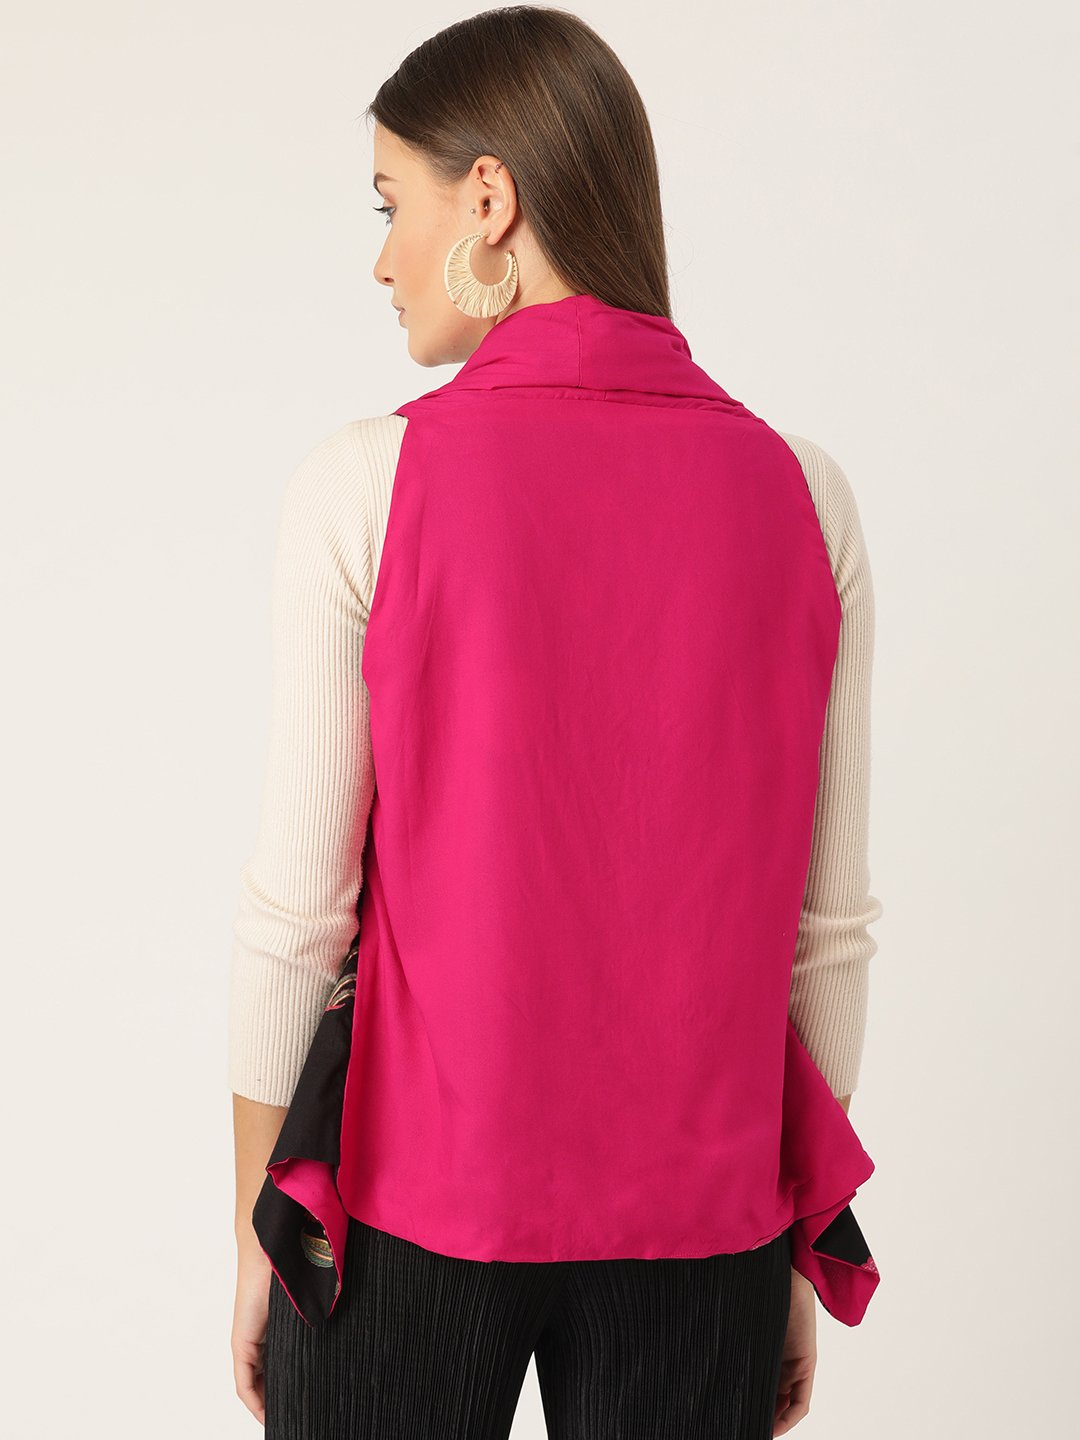 Reversible Shrug Pink & Black